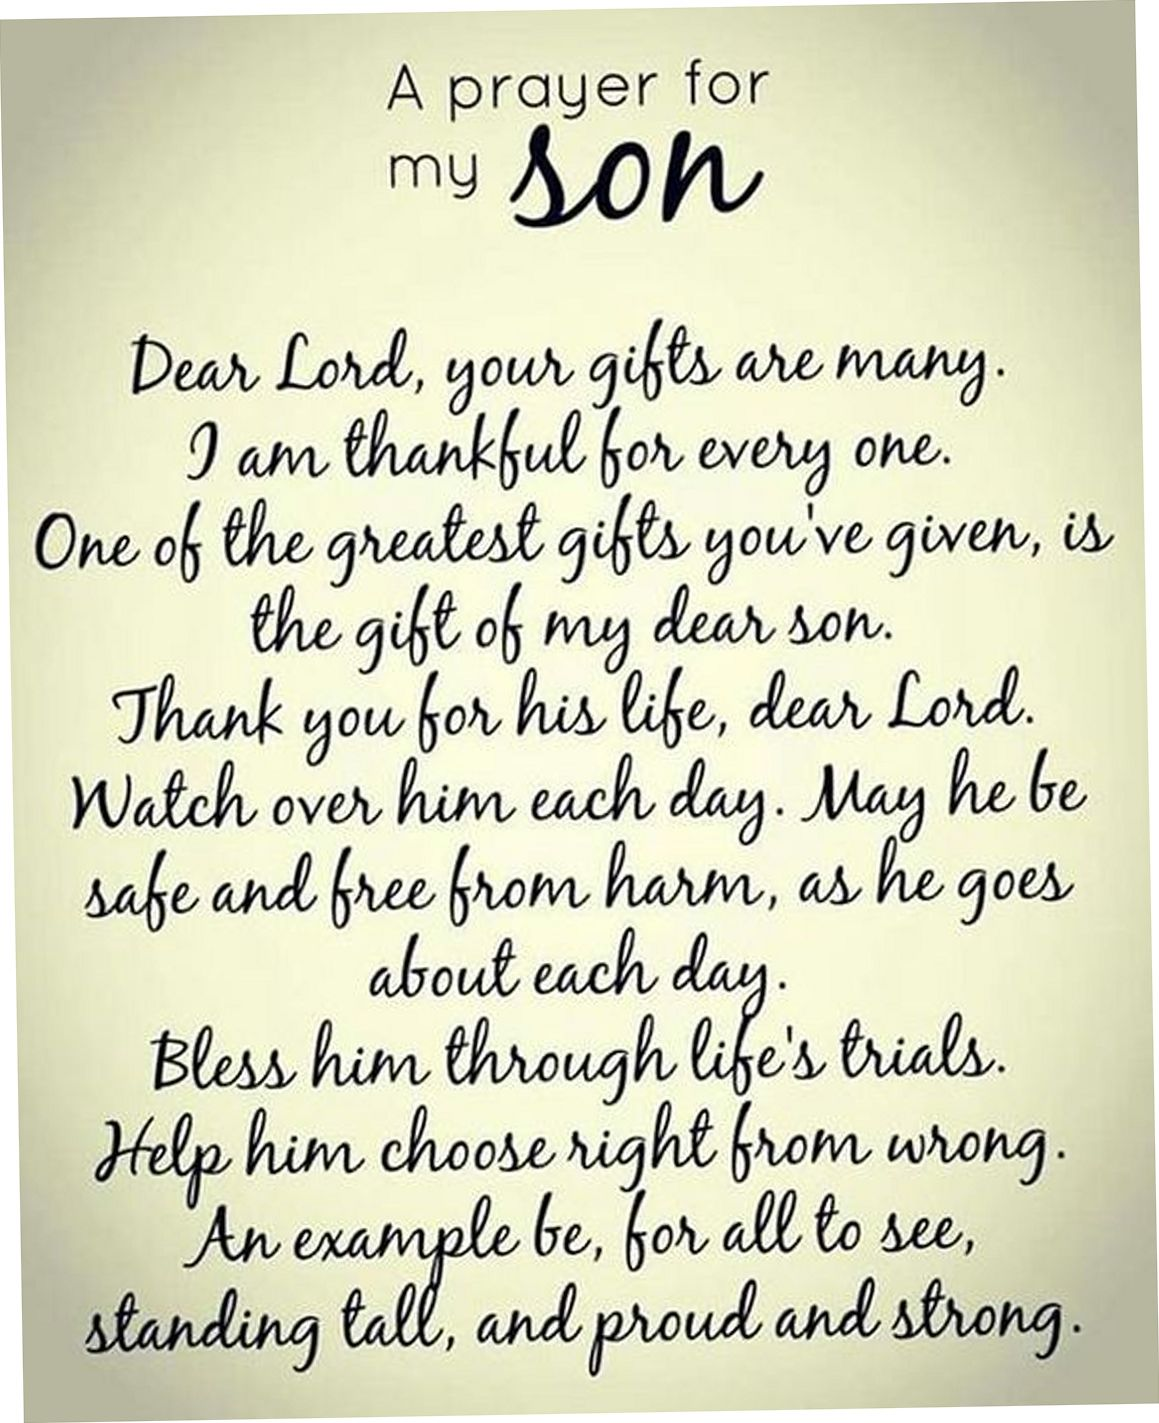 Pin By Marlee Chandler Taylor On Today Prayers Prayer For My Son Prayer For Today Prayer For Son